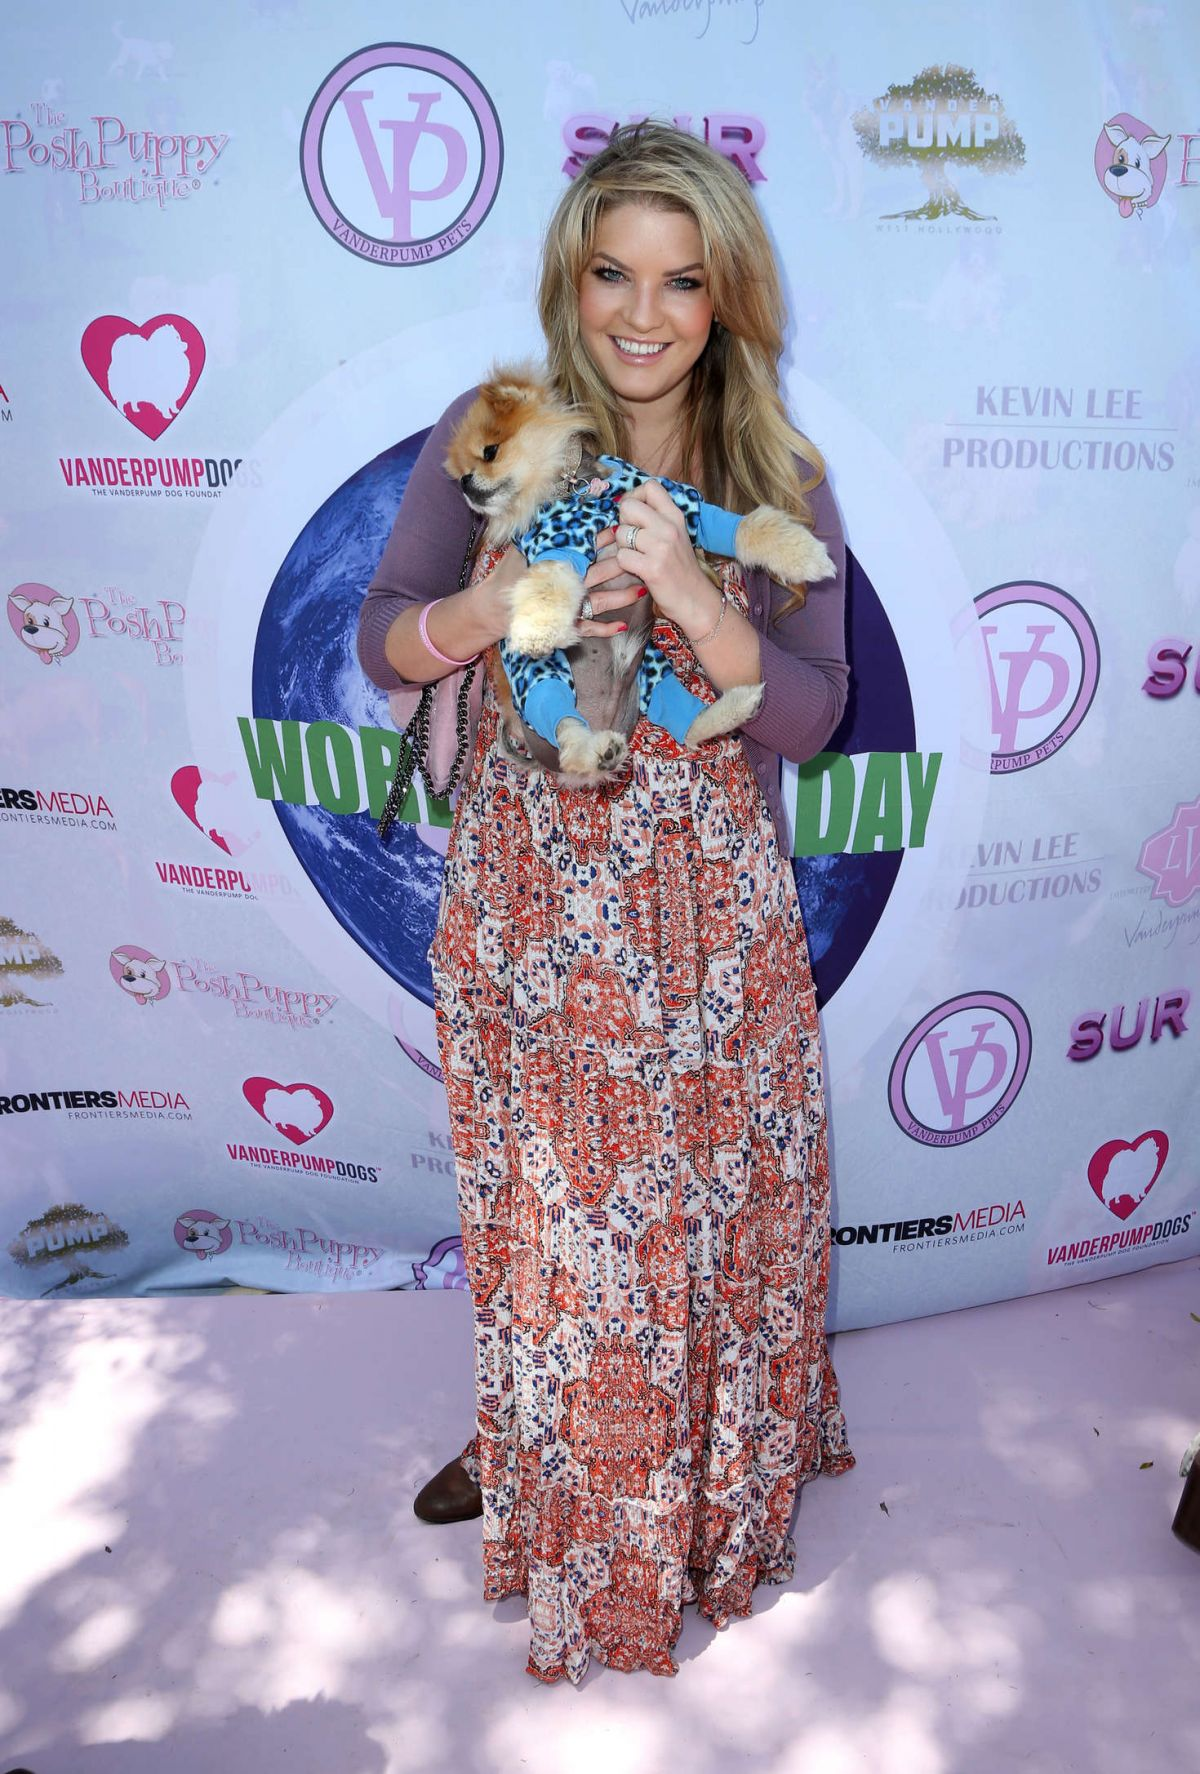 PANDORA VANDERPUMP at World Dog Day Celebration in West Hollywood 05/22/2016